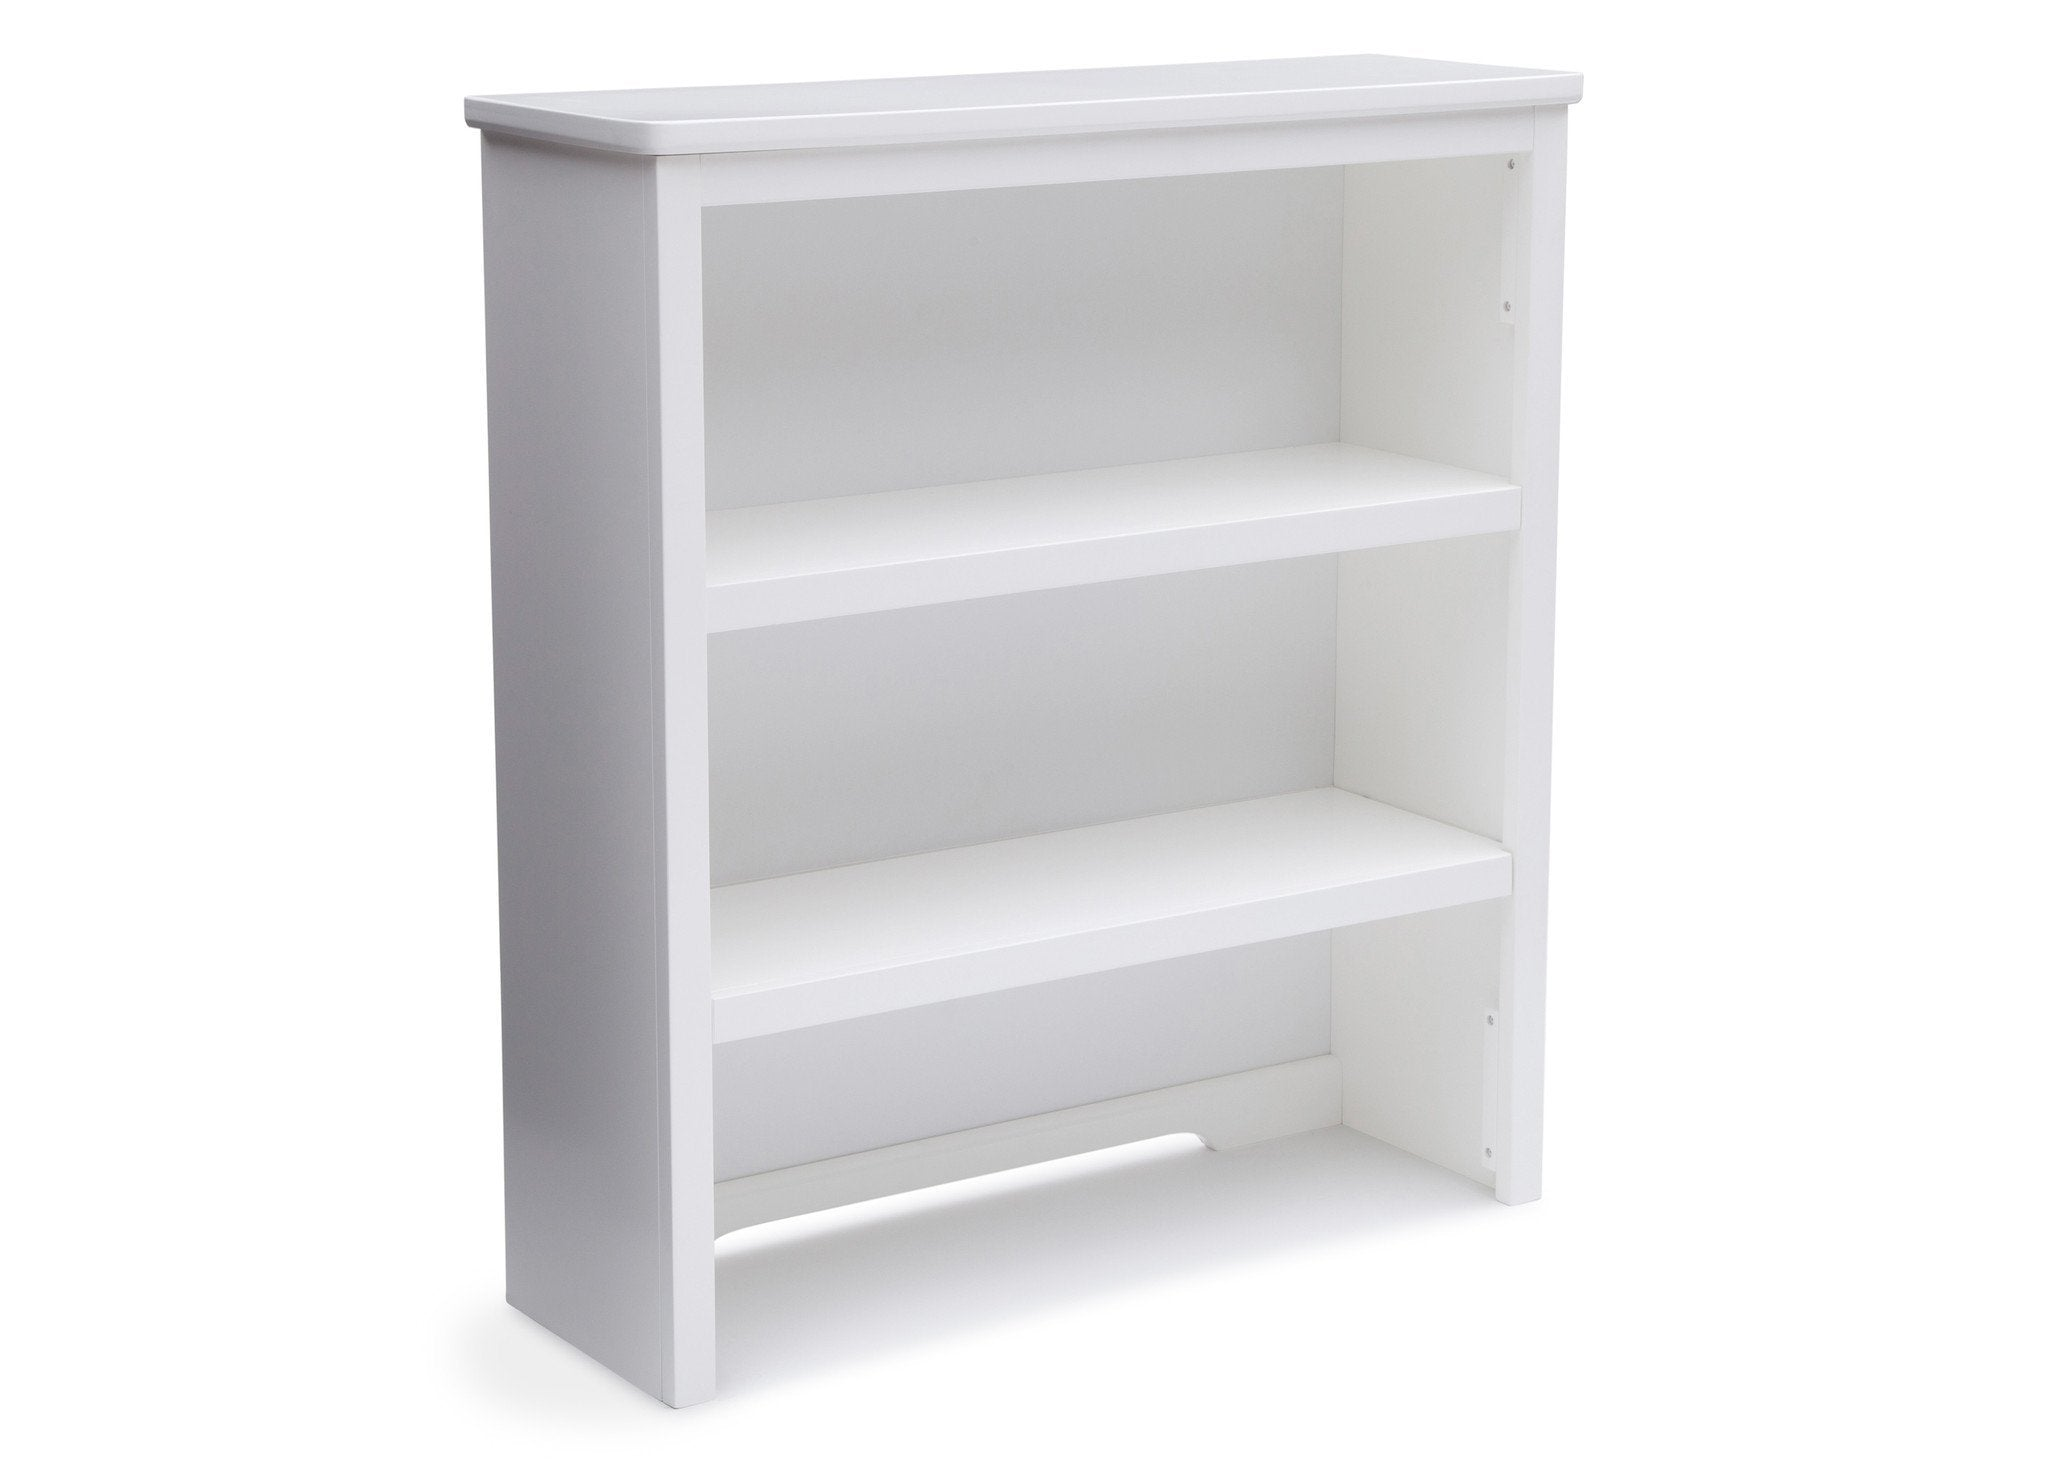 Delta Children White (100) Epic Bookcase/Hutch Side View b2b